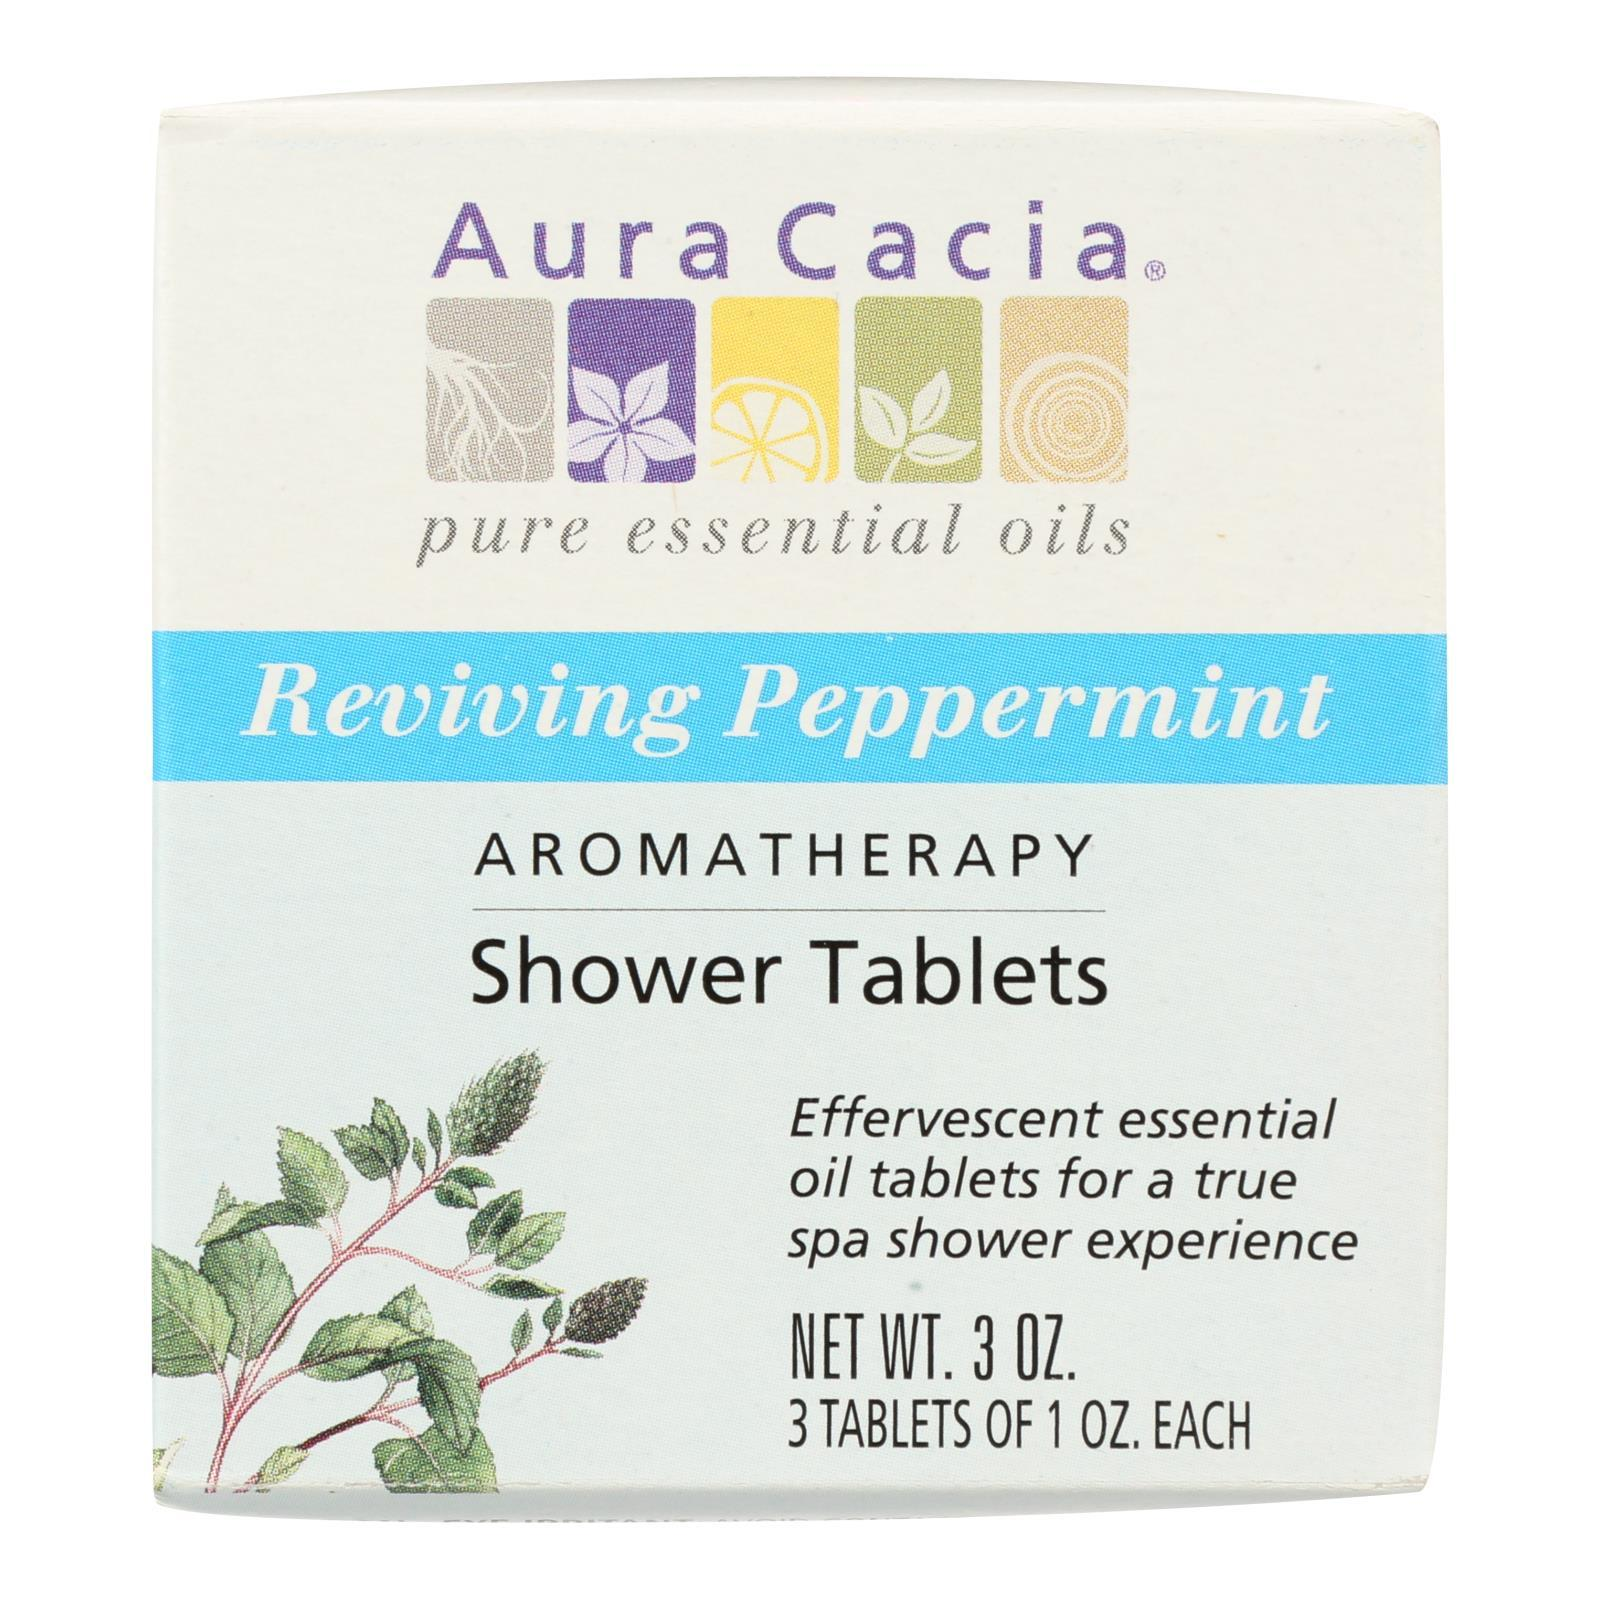 Aura Cacia - Reviving Aromatherapy Shower Tablets Peppermint - 3 Tablets - BeeGreen